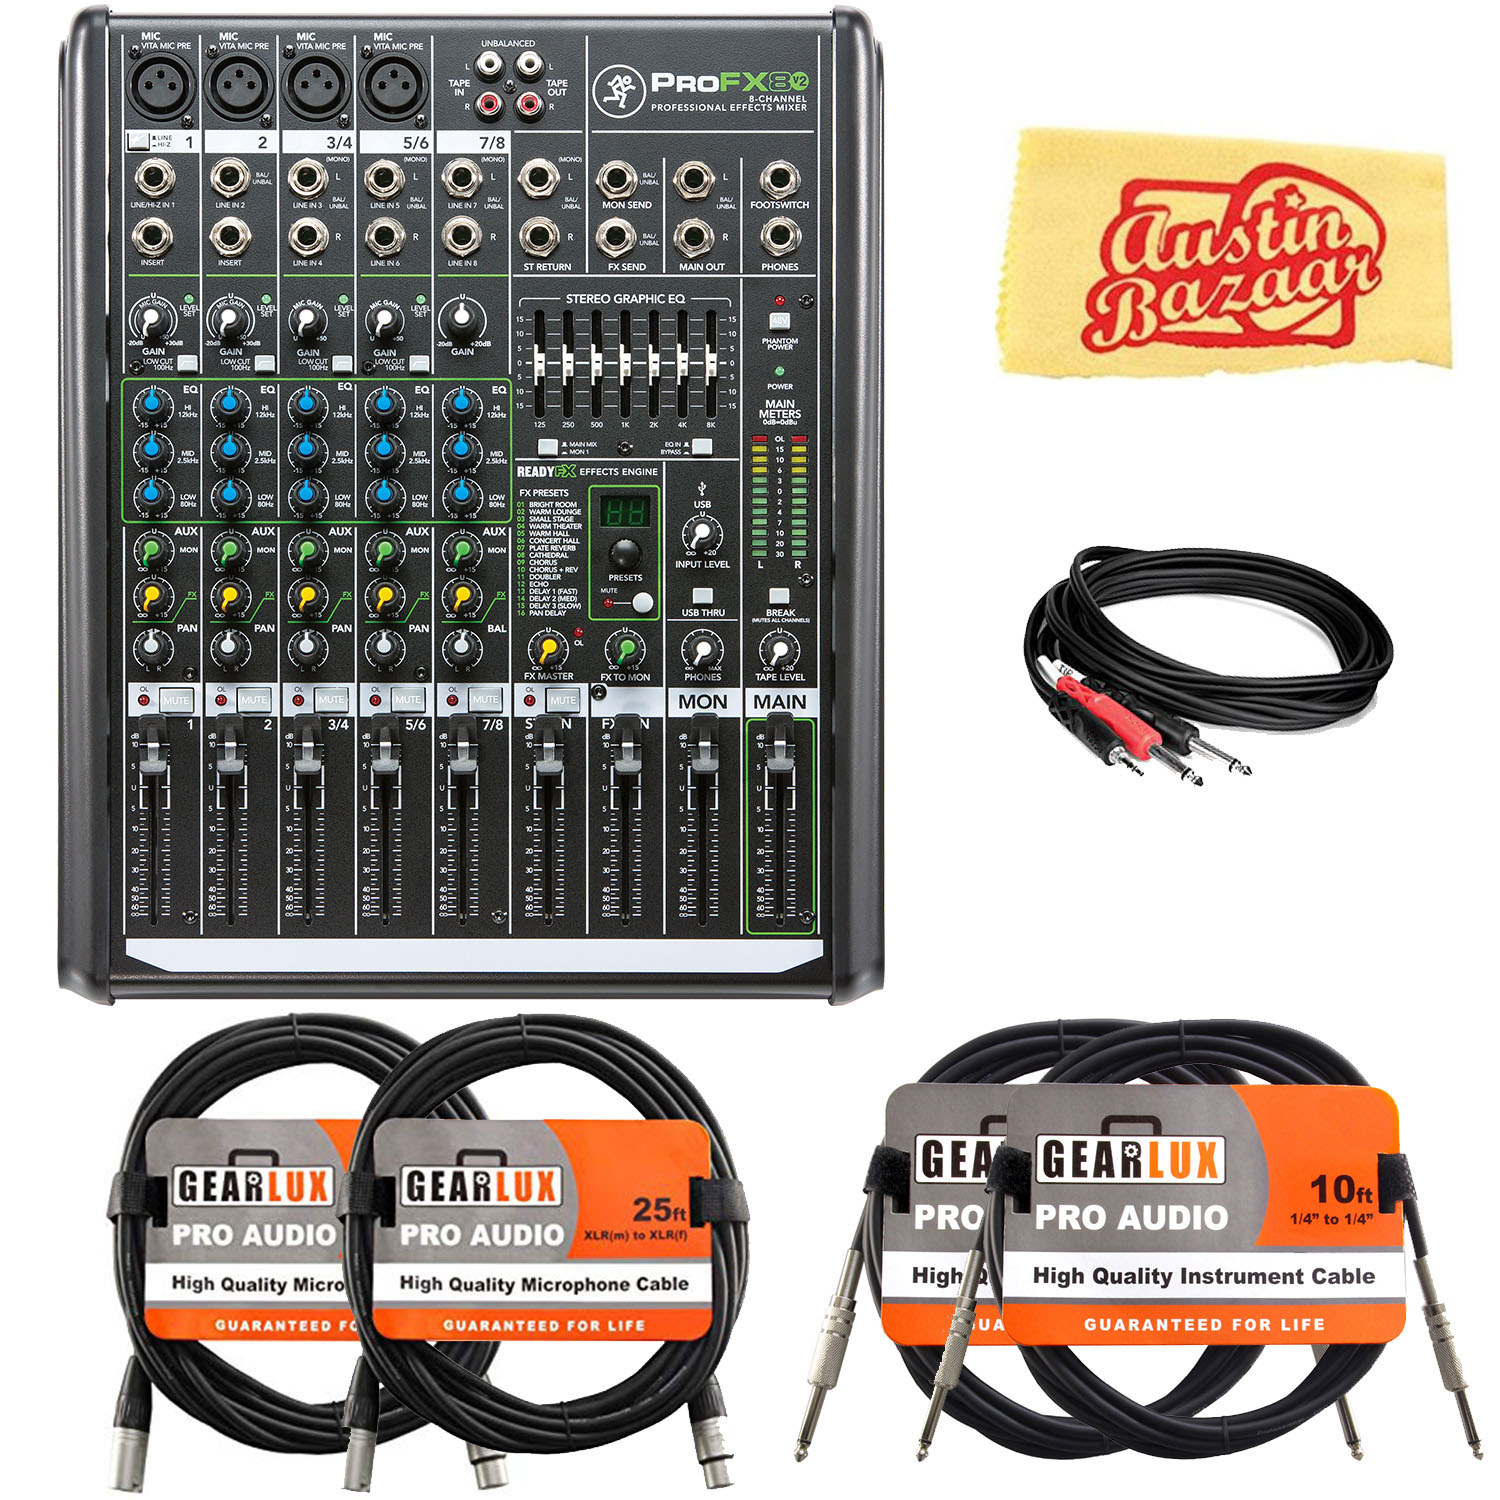 mackie profx8v2 8 channel professional effects mixer w cables ebay. Black Bedroom Furniture Sets. Home Design Ideas